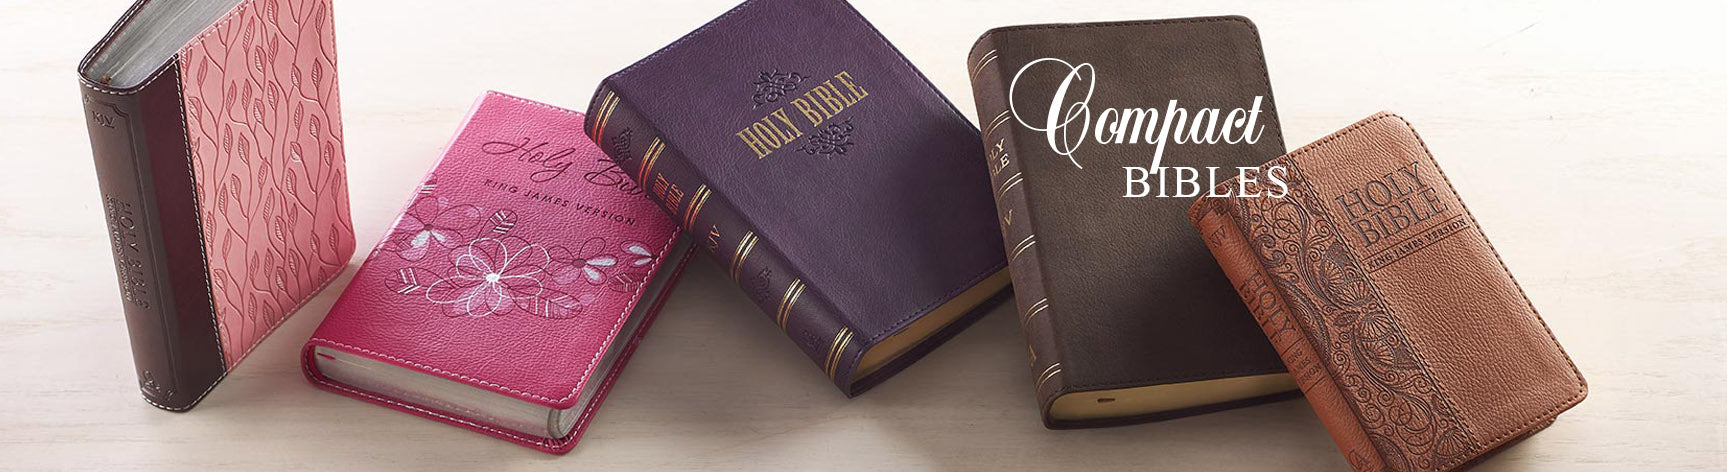 Compact Bibles